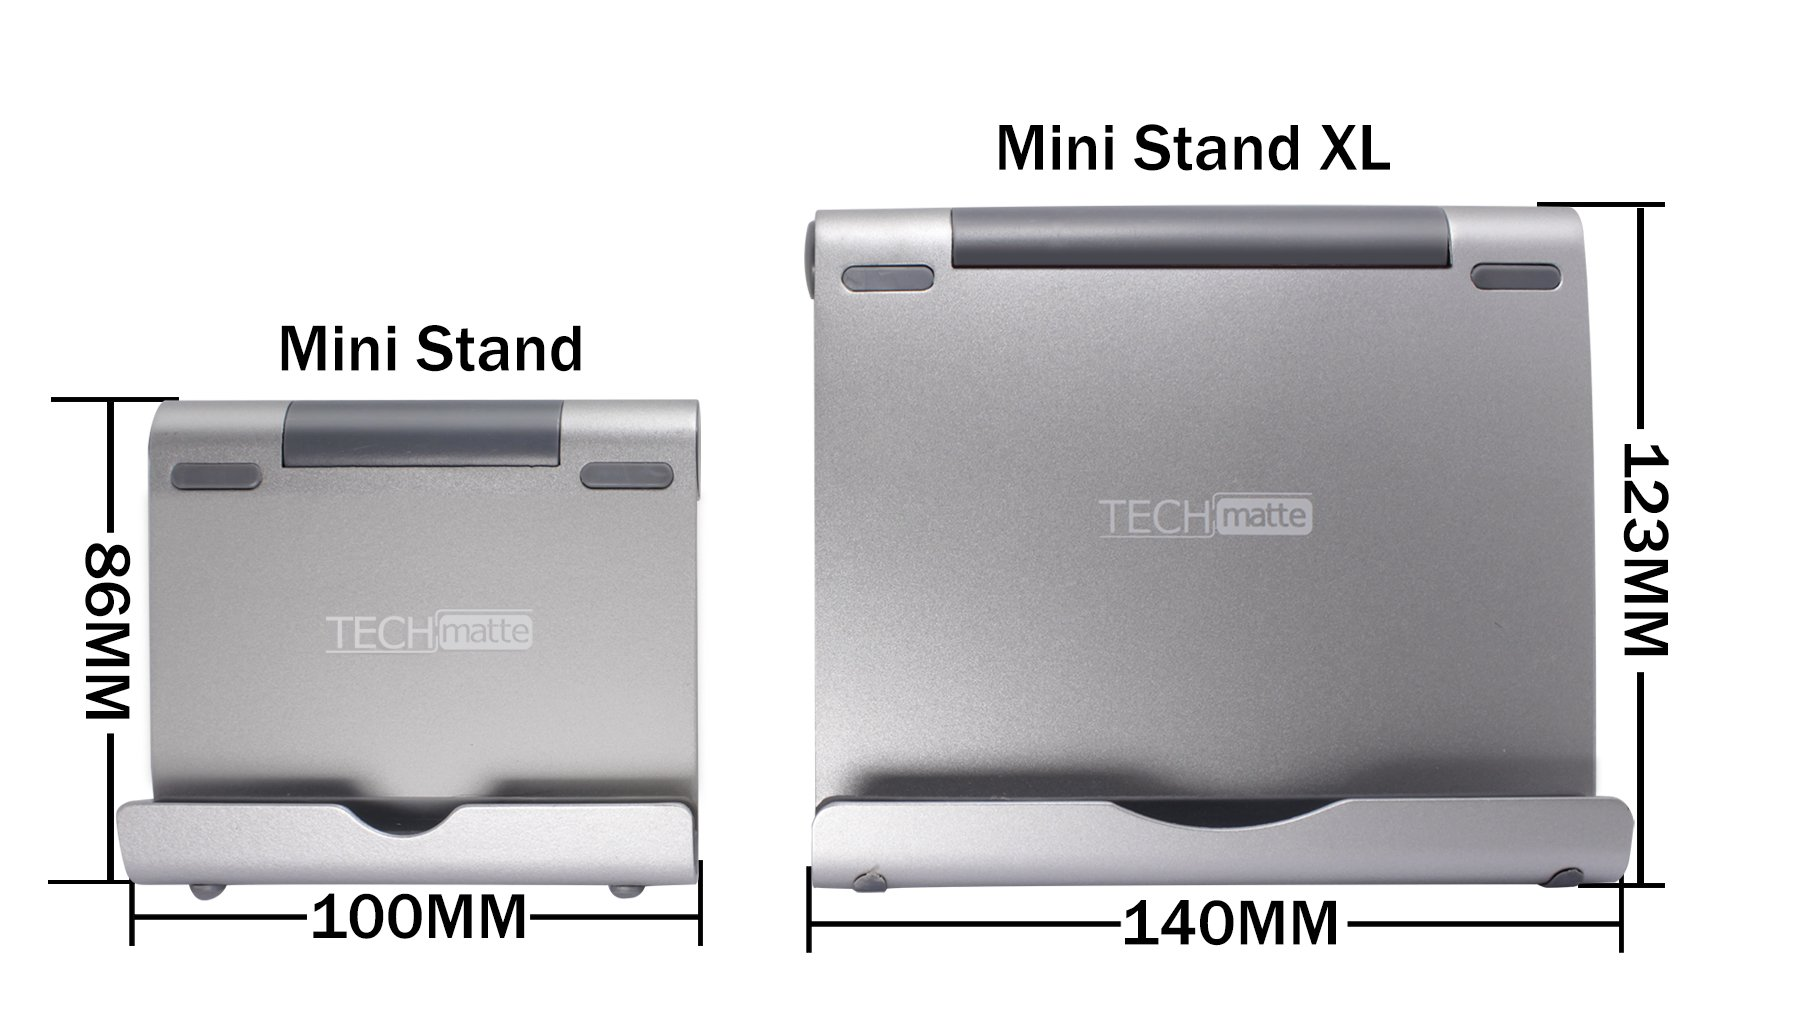 TechMatte iPad Pro Stand, Multi-Angle Aluminum Holder for iPad Pro 12.9 10.5 9.7 inch Tablets, E-readers and Smartphones,Nintendo Switch - XL-Size Stand by TechMatte (Image #7)